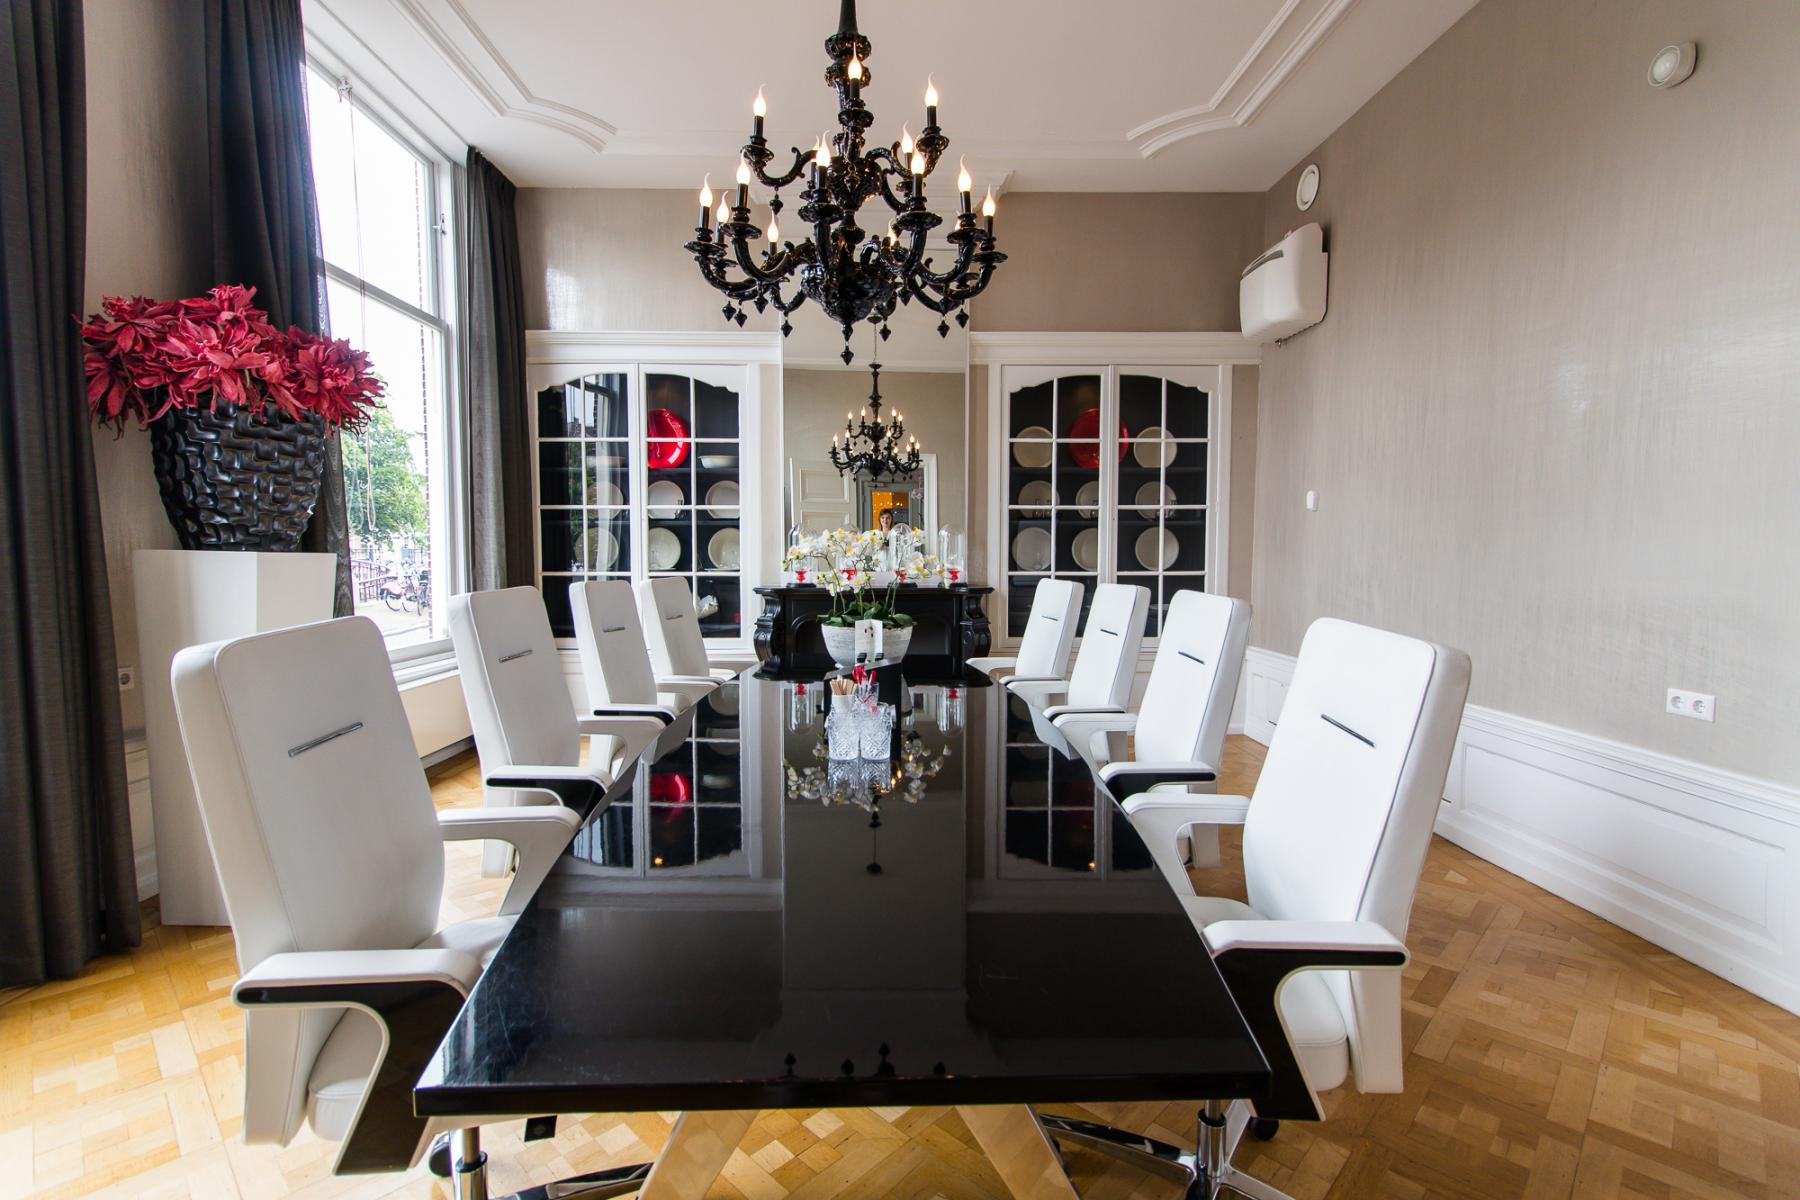 Conference rooms with different sizes for rent